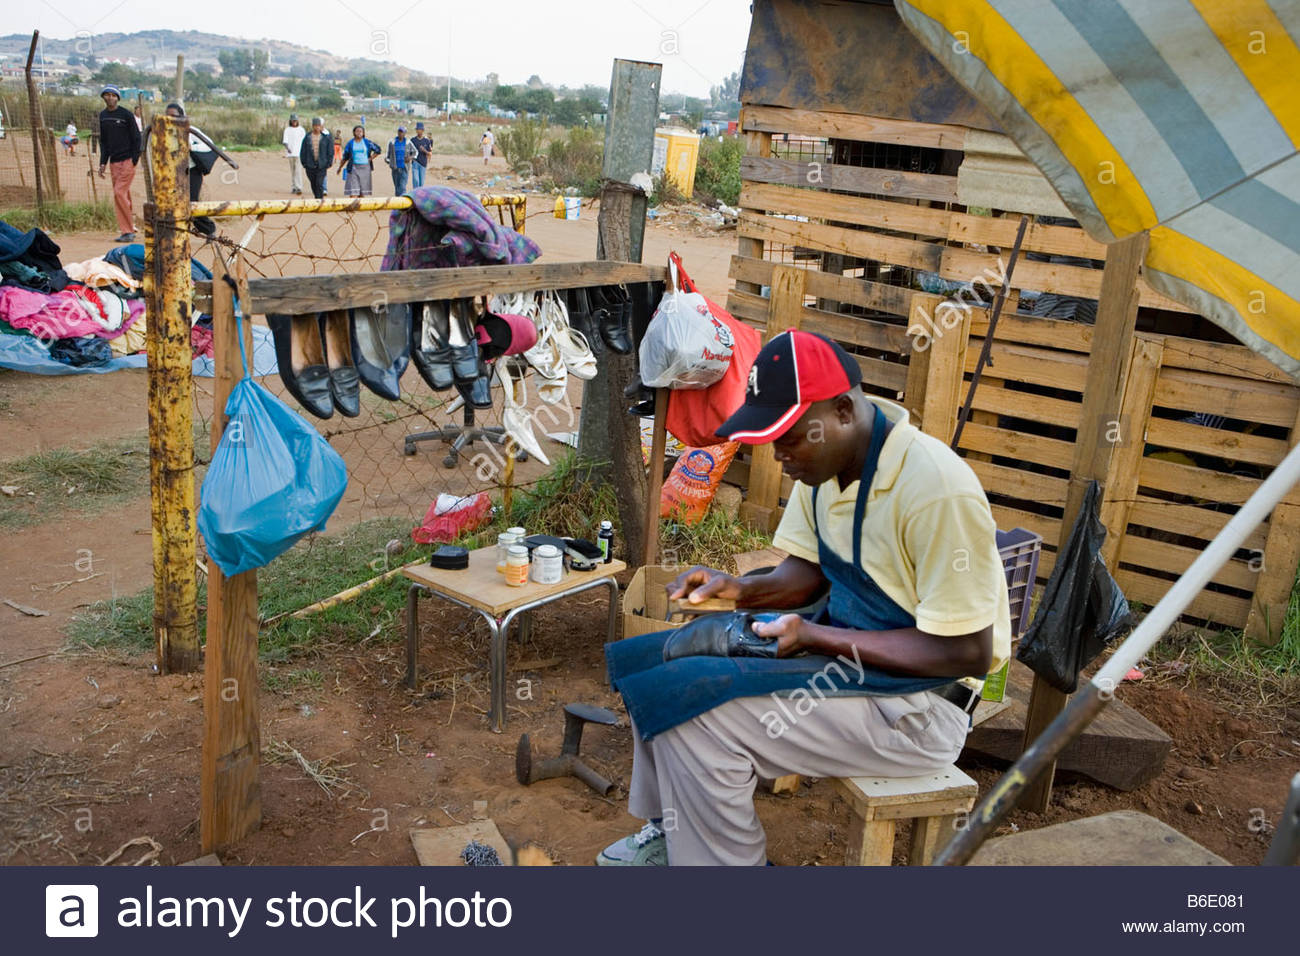 slum tourism Slum tourism thus matters because it is an empirical domain in which the social question is posited, negotiated and sometimes addressed it can thus be understood as an indicator of how the social question is addressed in particular historical periods.